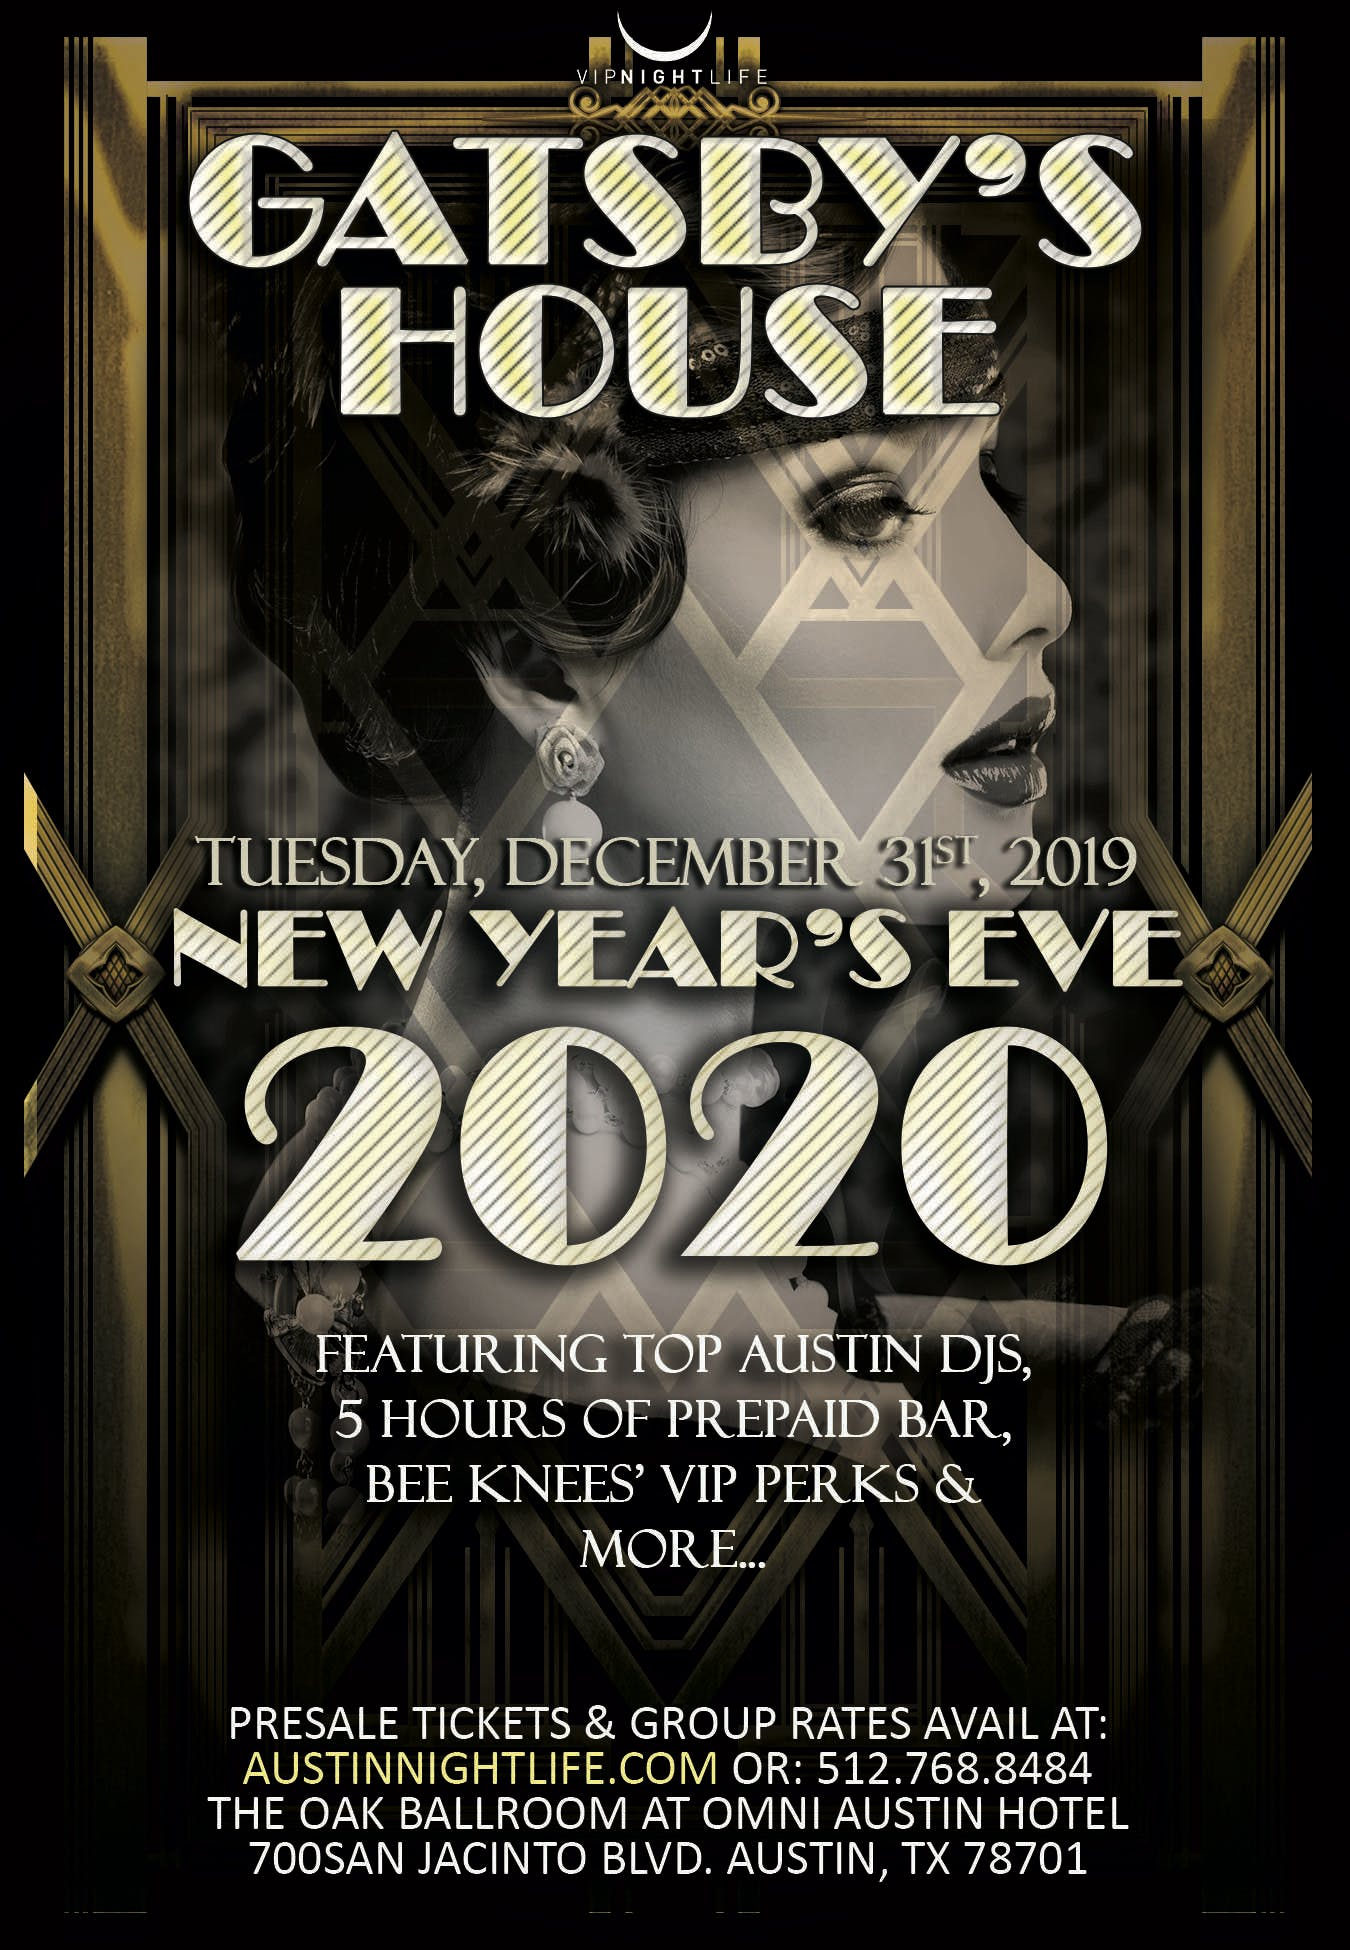 Gatsby's House - Austin New Year's Eve 2020, Austin TX ...